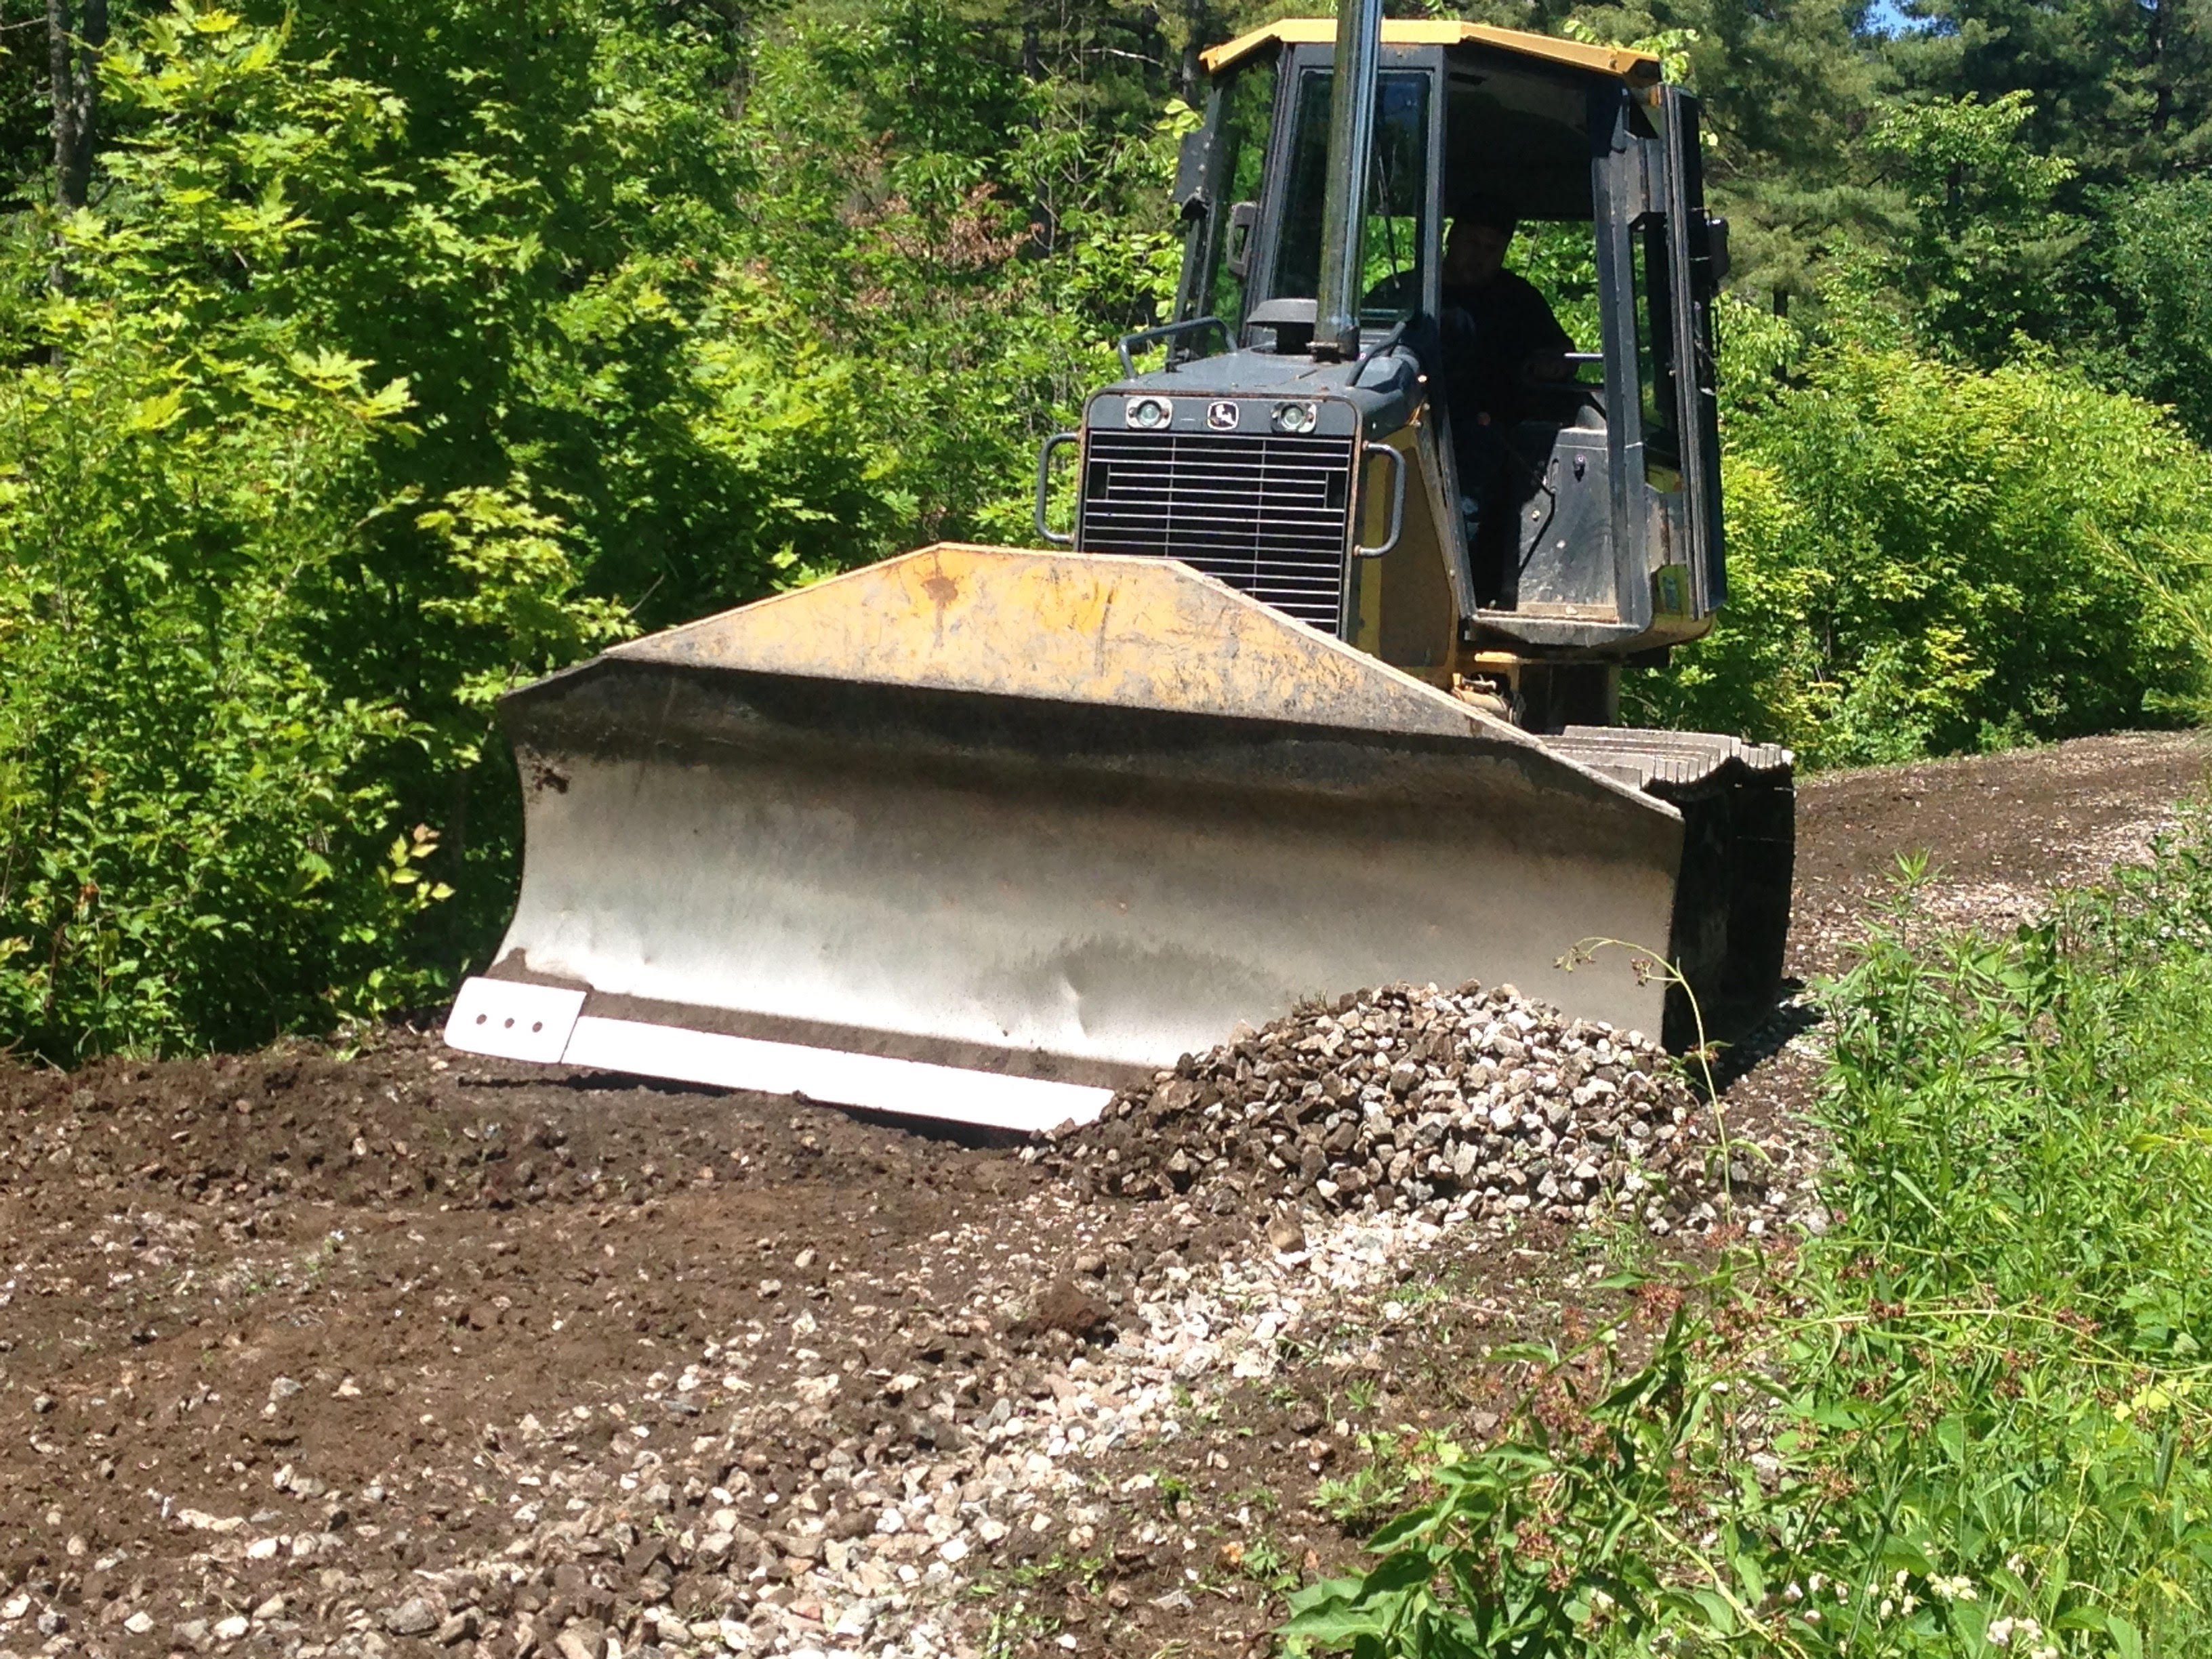 2018-06-01 bulldozer on community rail trail